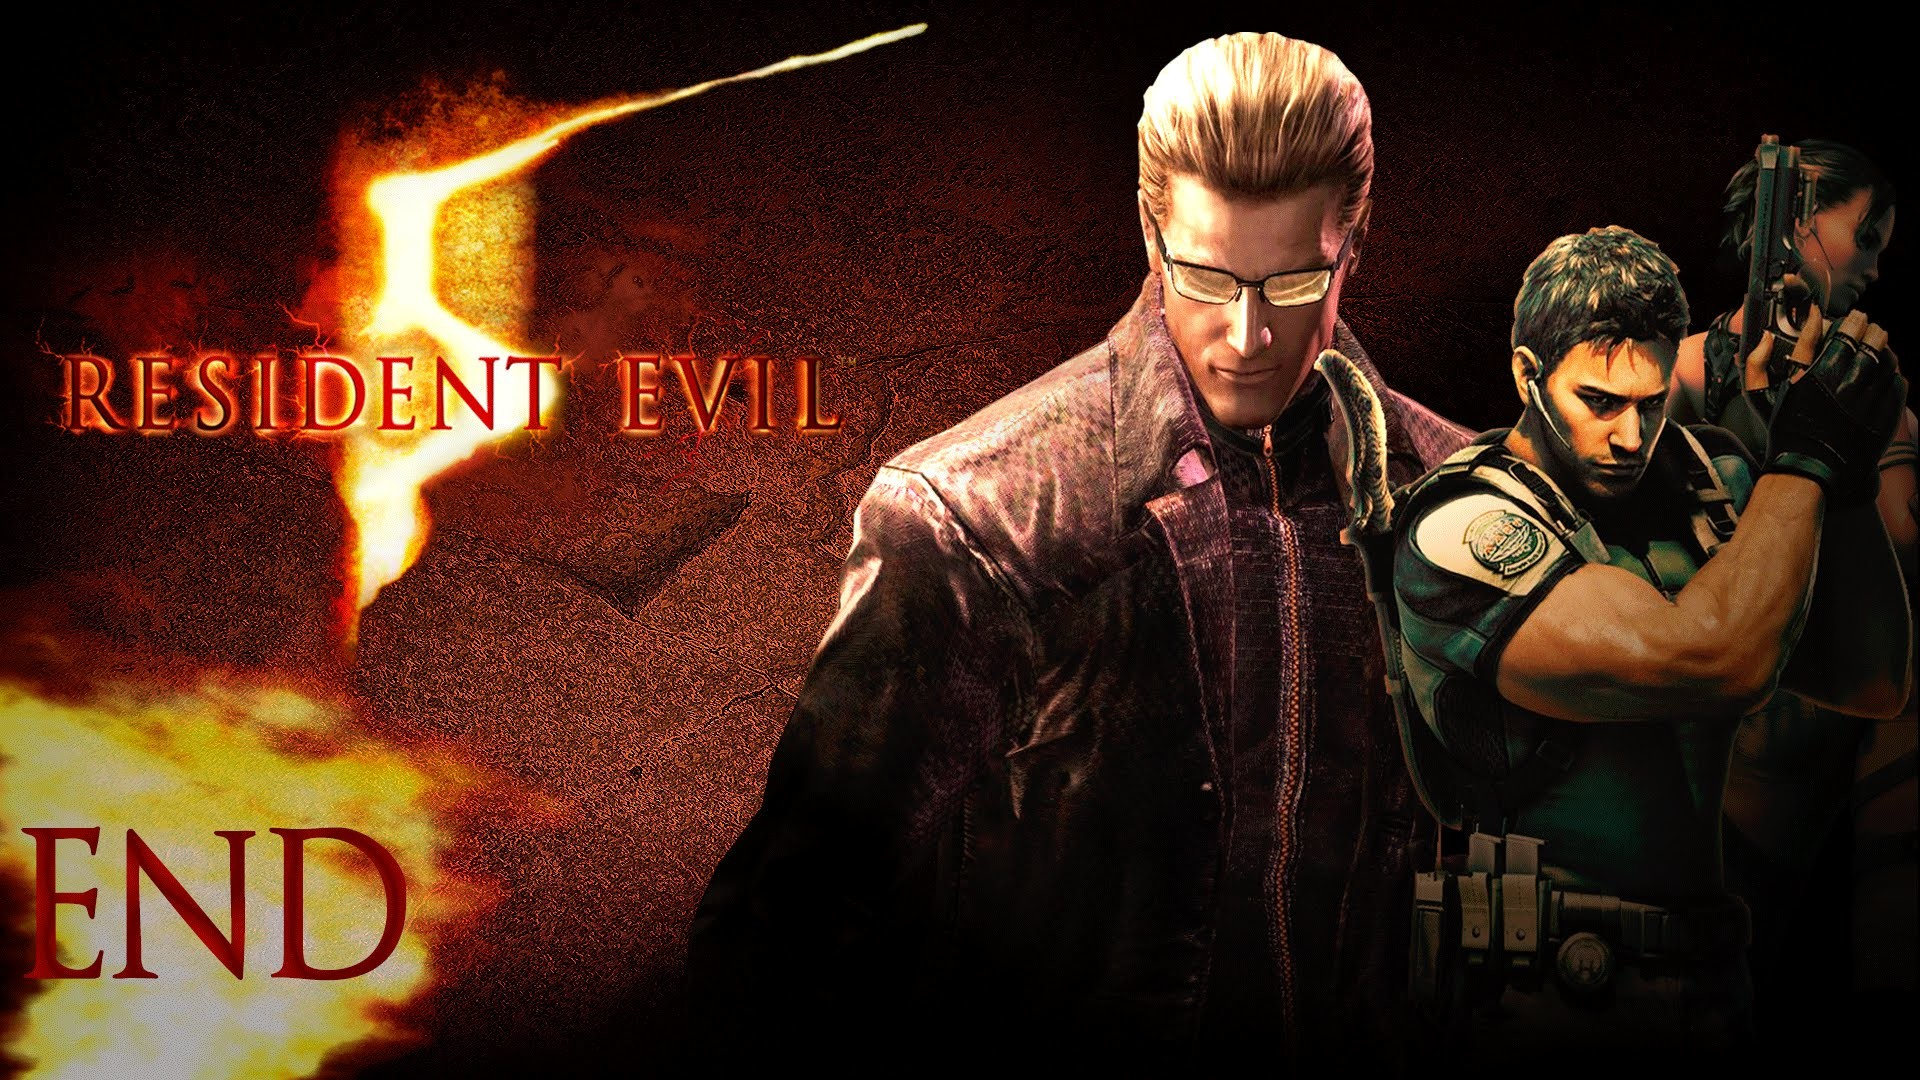 Res: 1920x1080, Let's Play Resident Evil 5 - (CO-OP) Chapter 6-3 ALBERT WESKER BOSS END -  YouTube